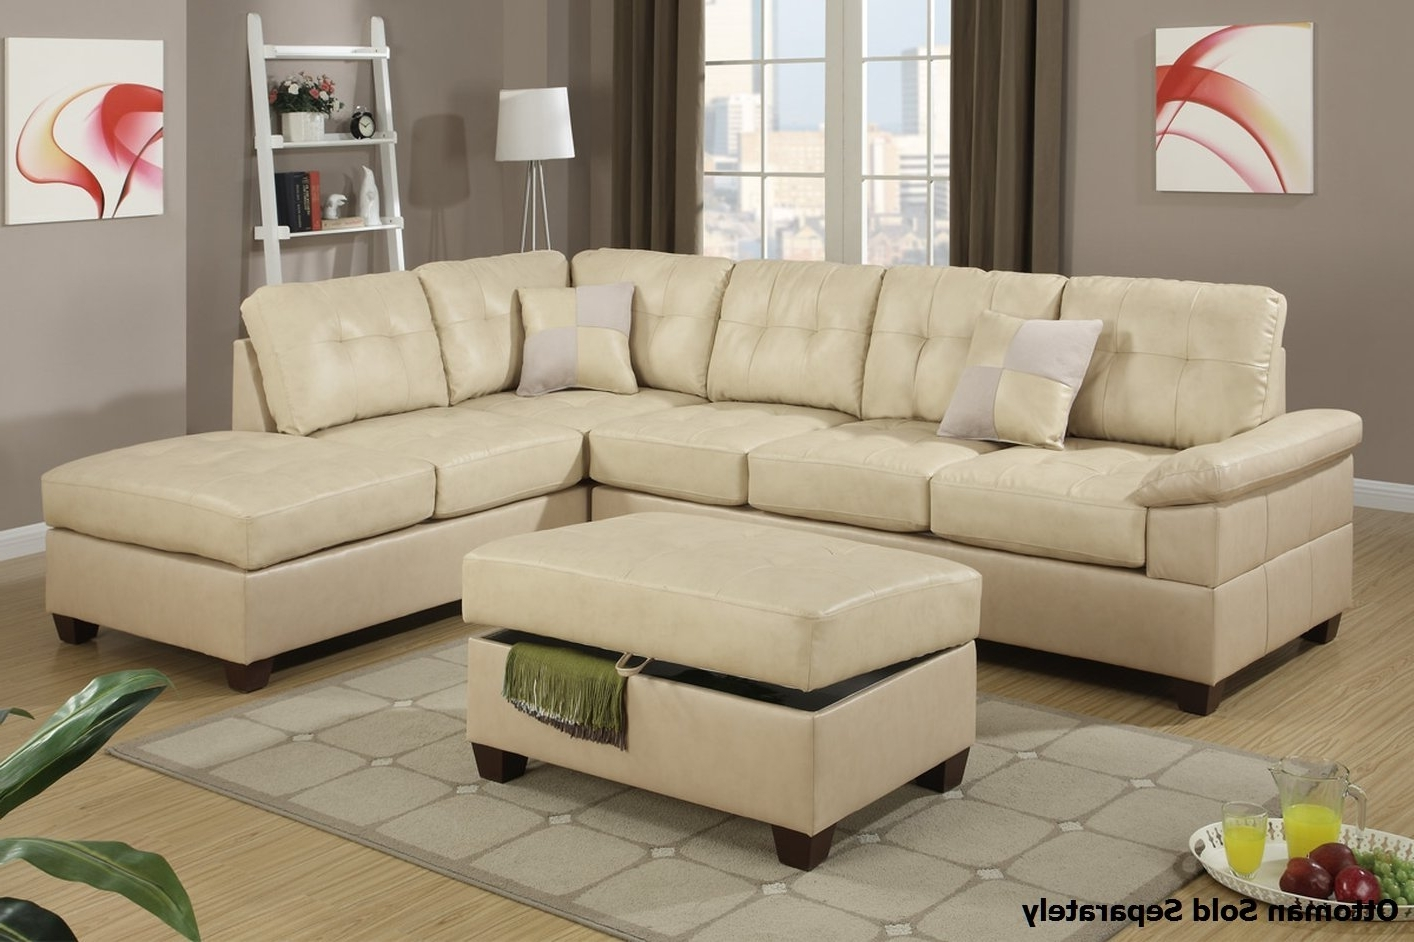 Sectional Sofa Design: Amazing Beige Sectional Sofas Beige Leather With Fashionable Cream Chaise Sofas (View 13 of 15)